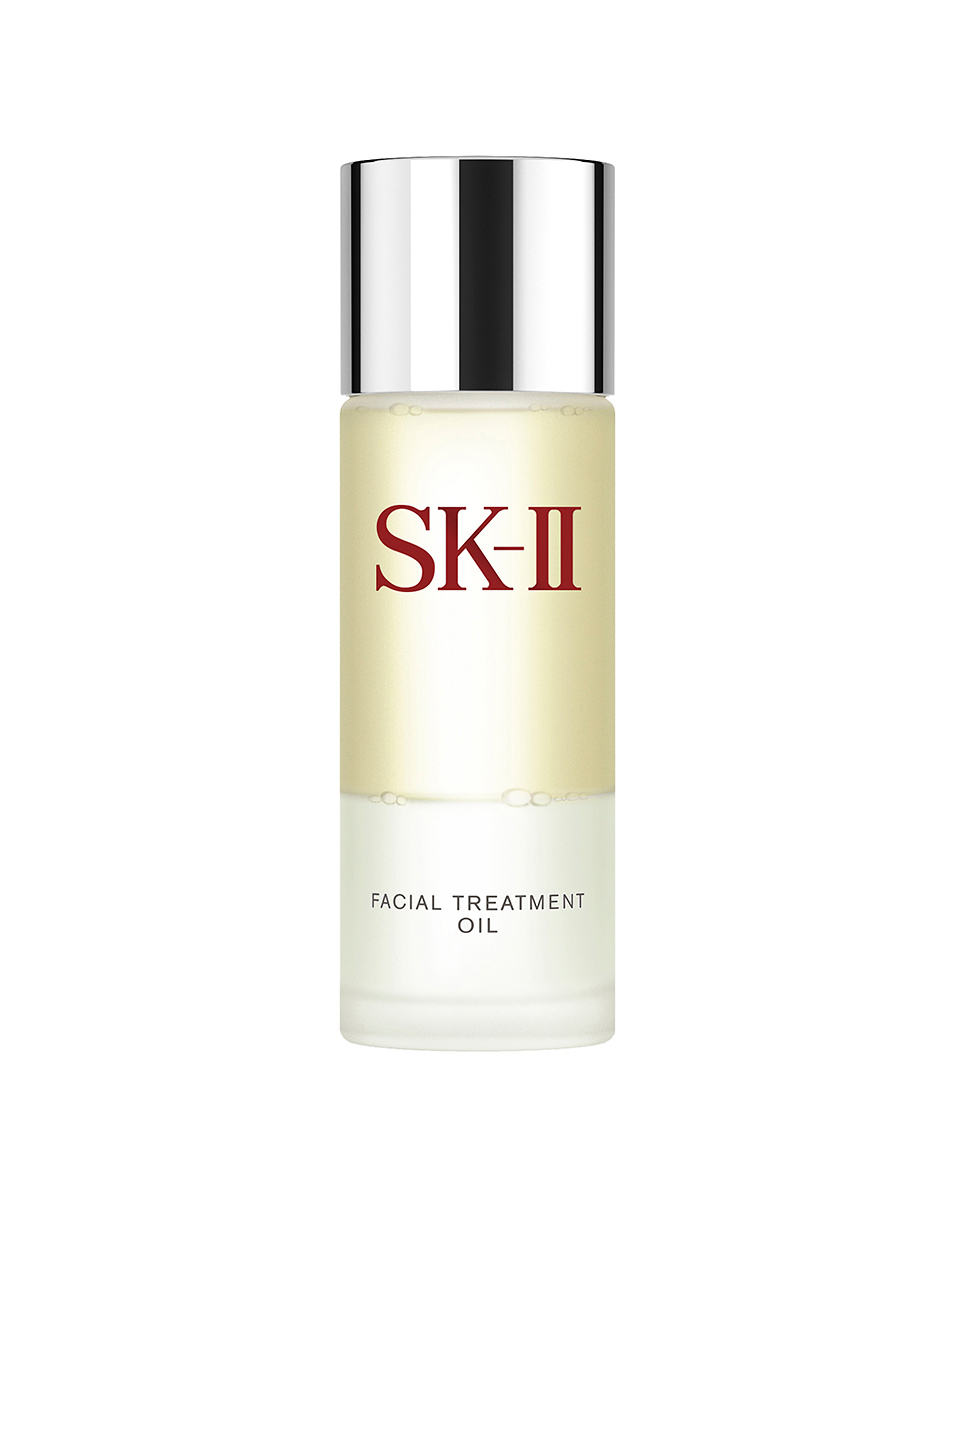 SK-II Facial Treatment Oil in